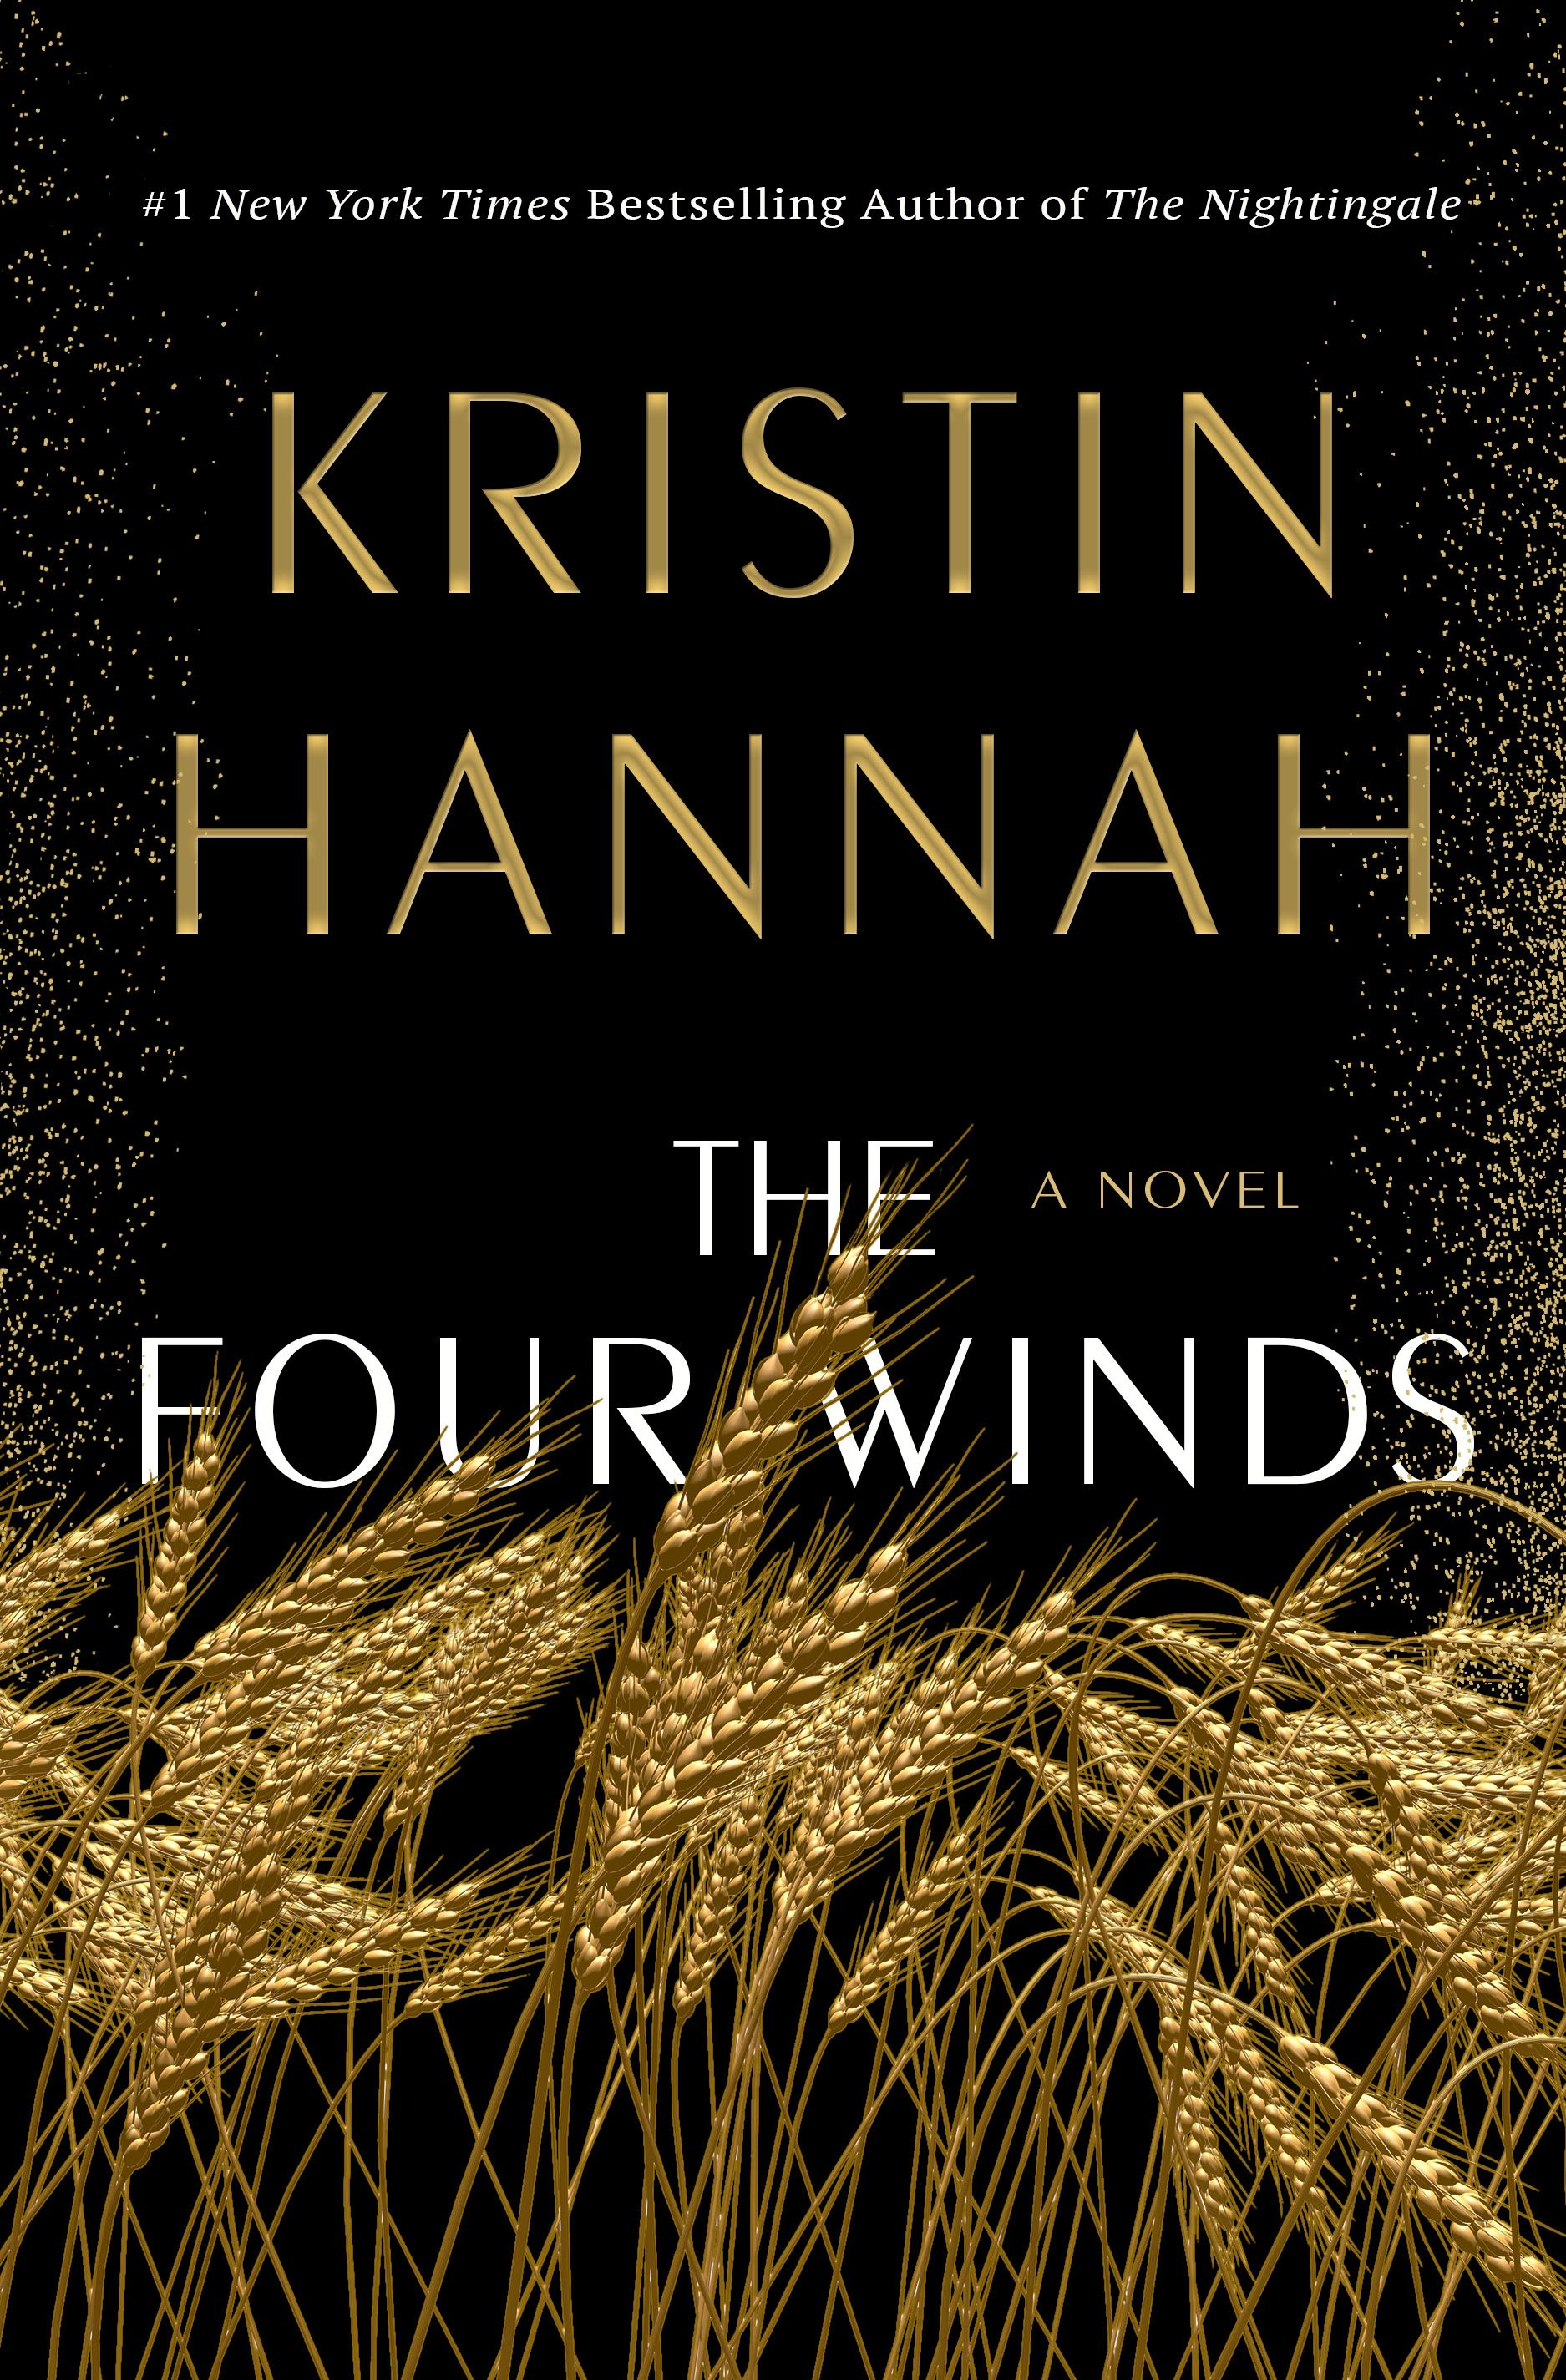 Best New Fiction 2021 Historical Fiction 2021. The Four Winds by Kristin Hannah. From